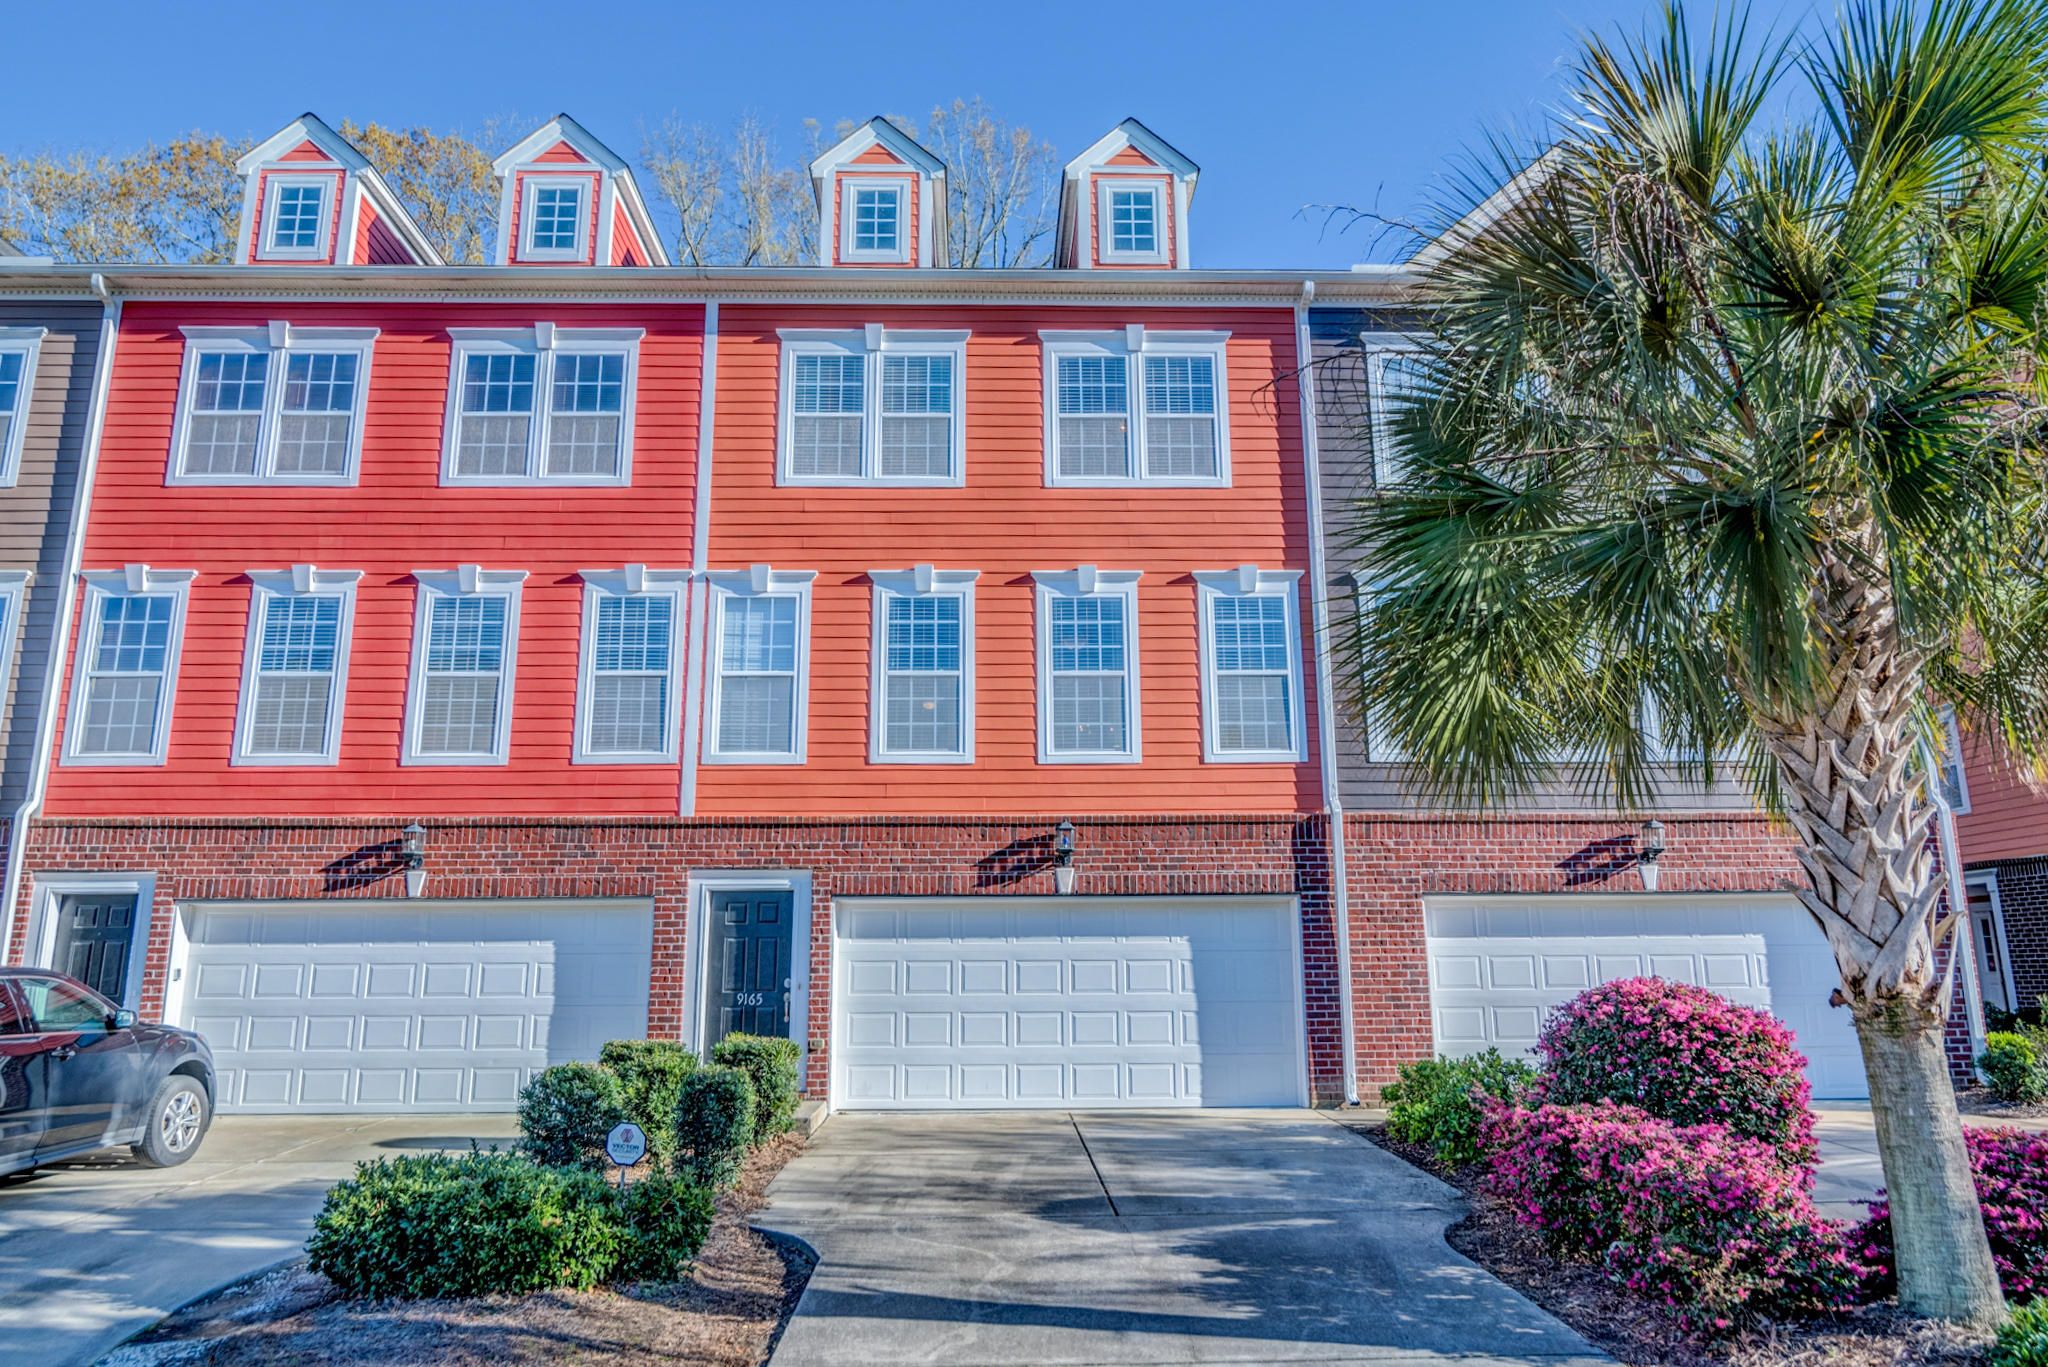 Looking For A Low Maintenance Move In Ready Home Here Is One With Great Incentives You Can T Afford To Miss 3 Ladson Home Warranty House Exterior